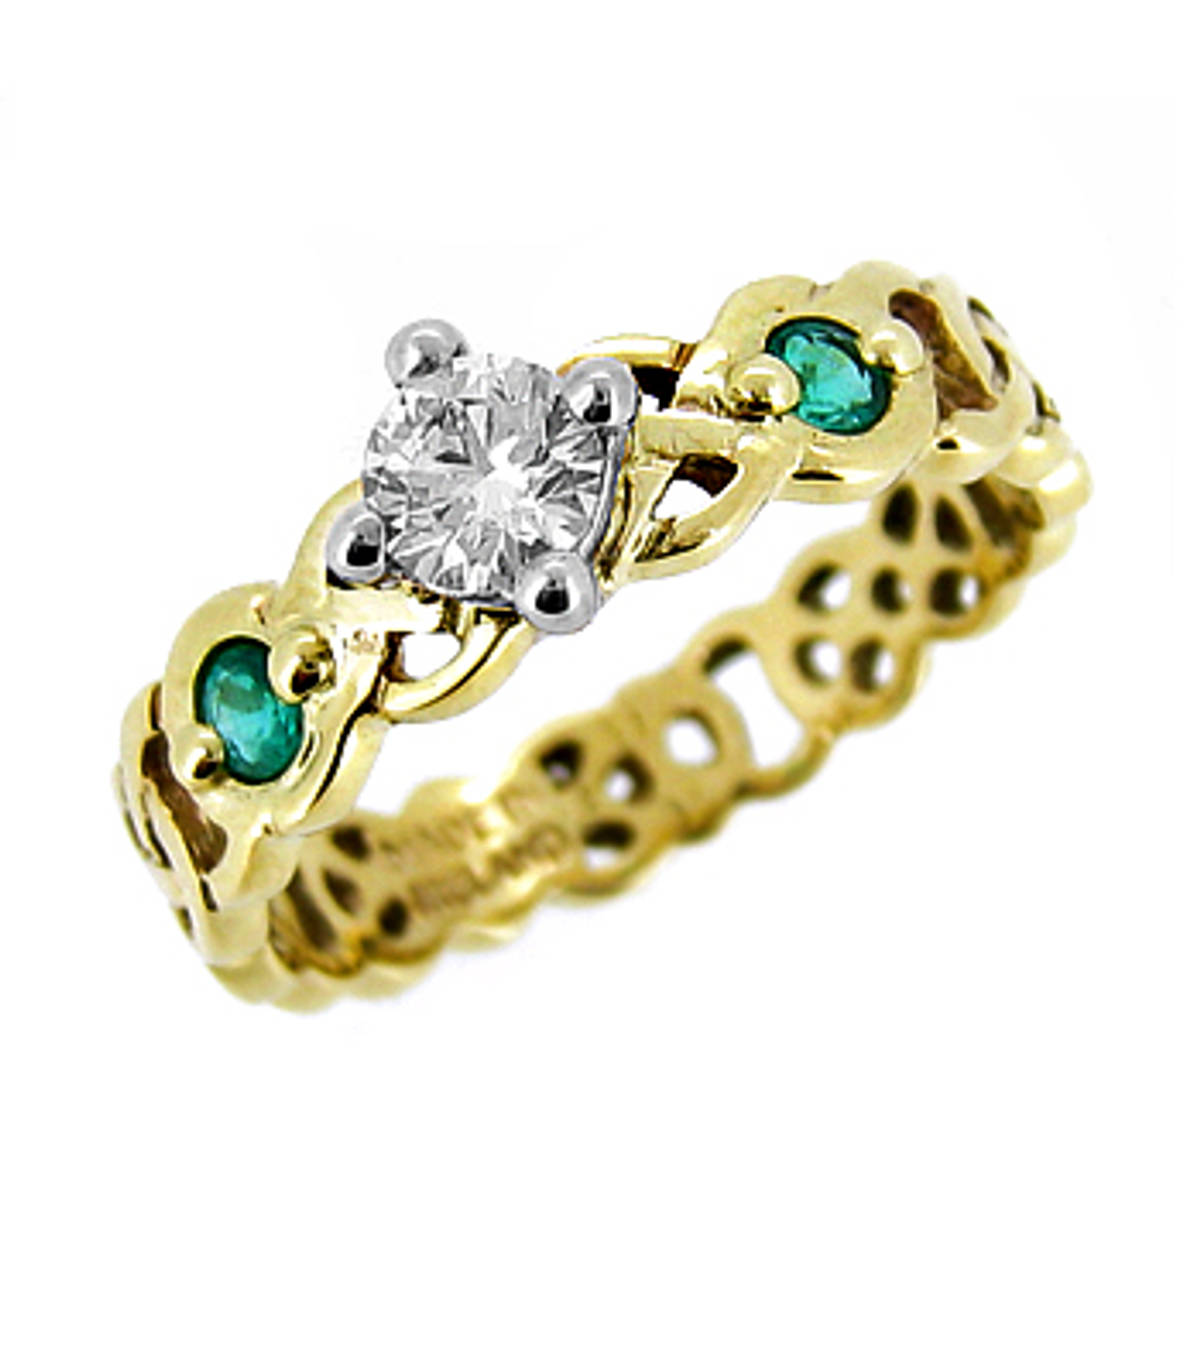 14 carat yellow gold 0.30cts diamonds/0.14cts emeralds celtic engagement ring